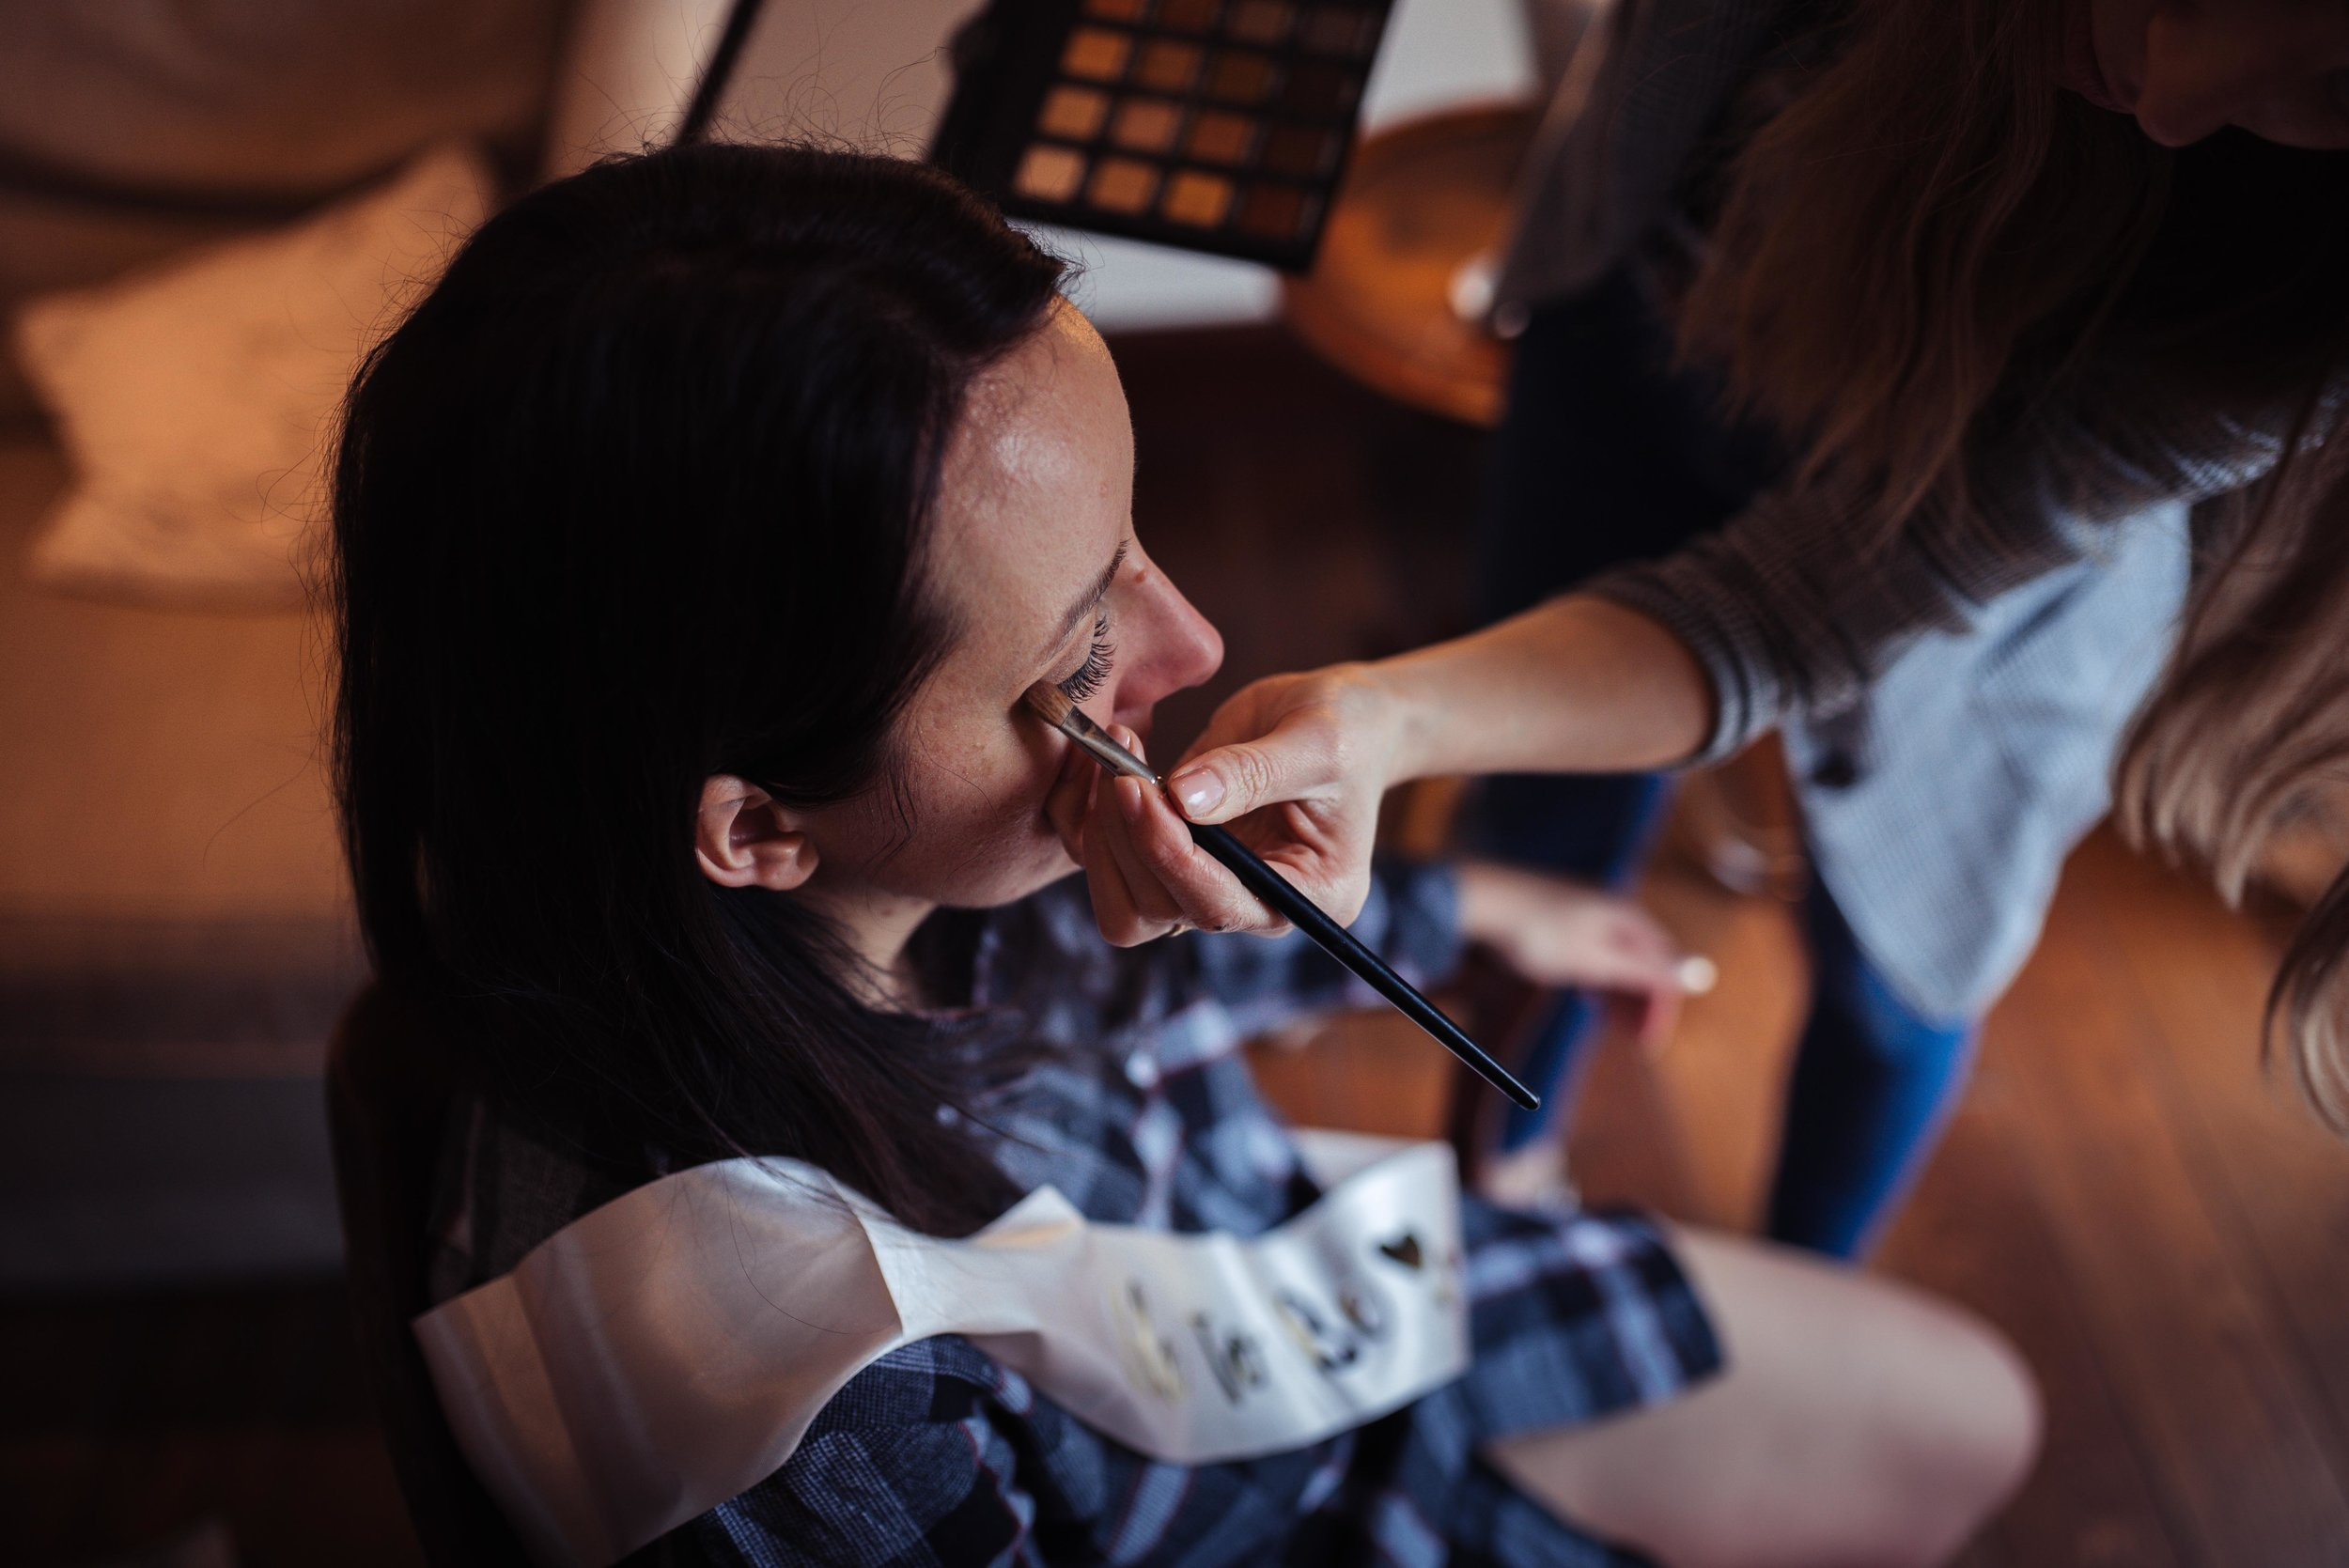 Elevated view of the bride in a blue shirt having her eye makeup applied